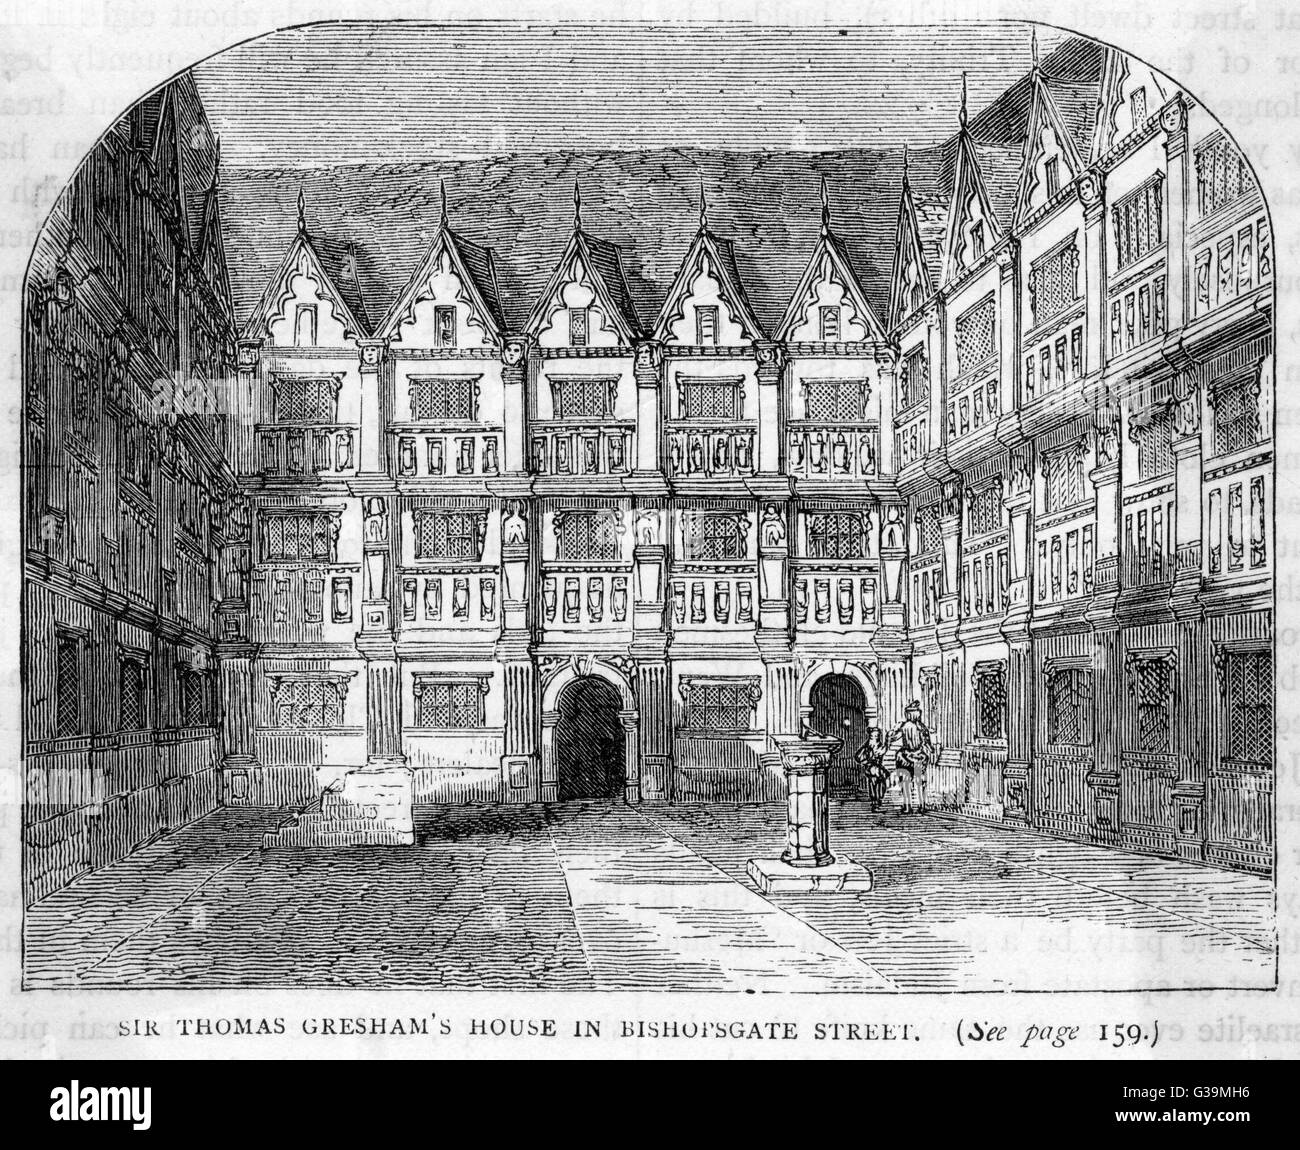 SIR THOMAS GRESHAM  House in Bishopsgate Street  of the English financier who  founded Gresham College and  built - Stock Image